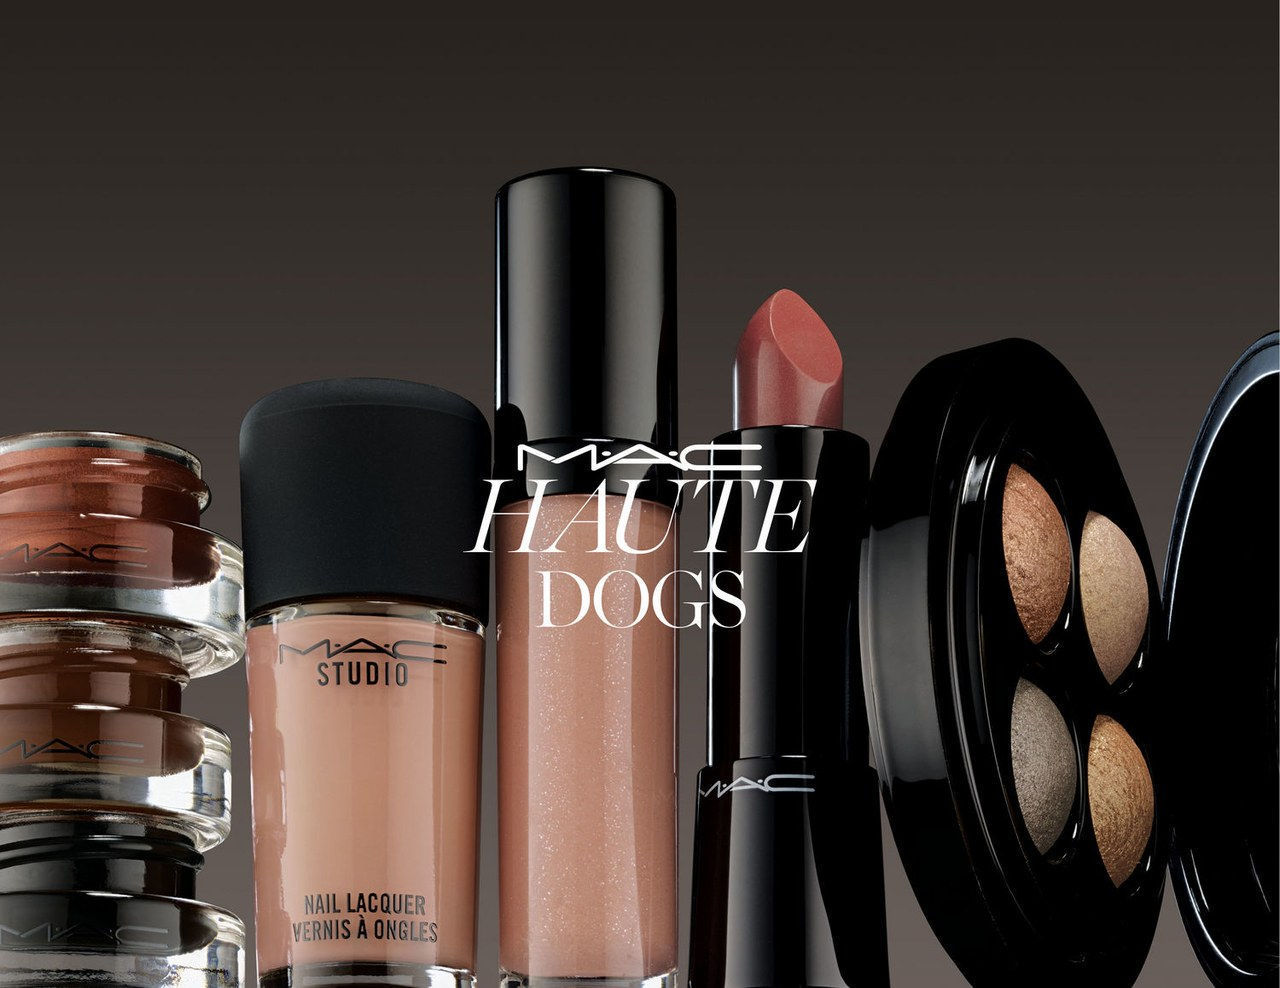 Haute dogs products 2